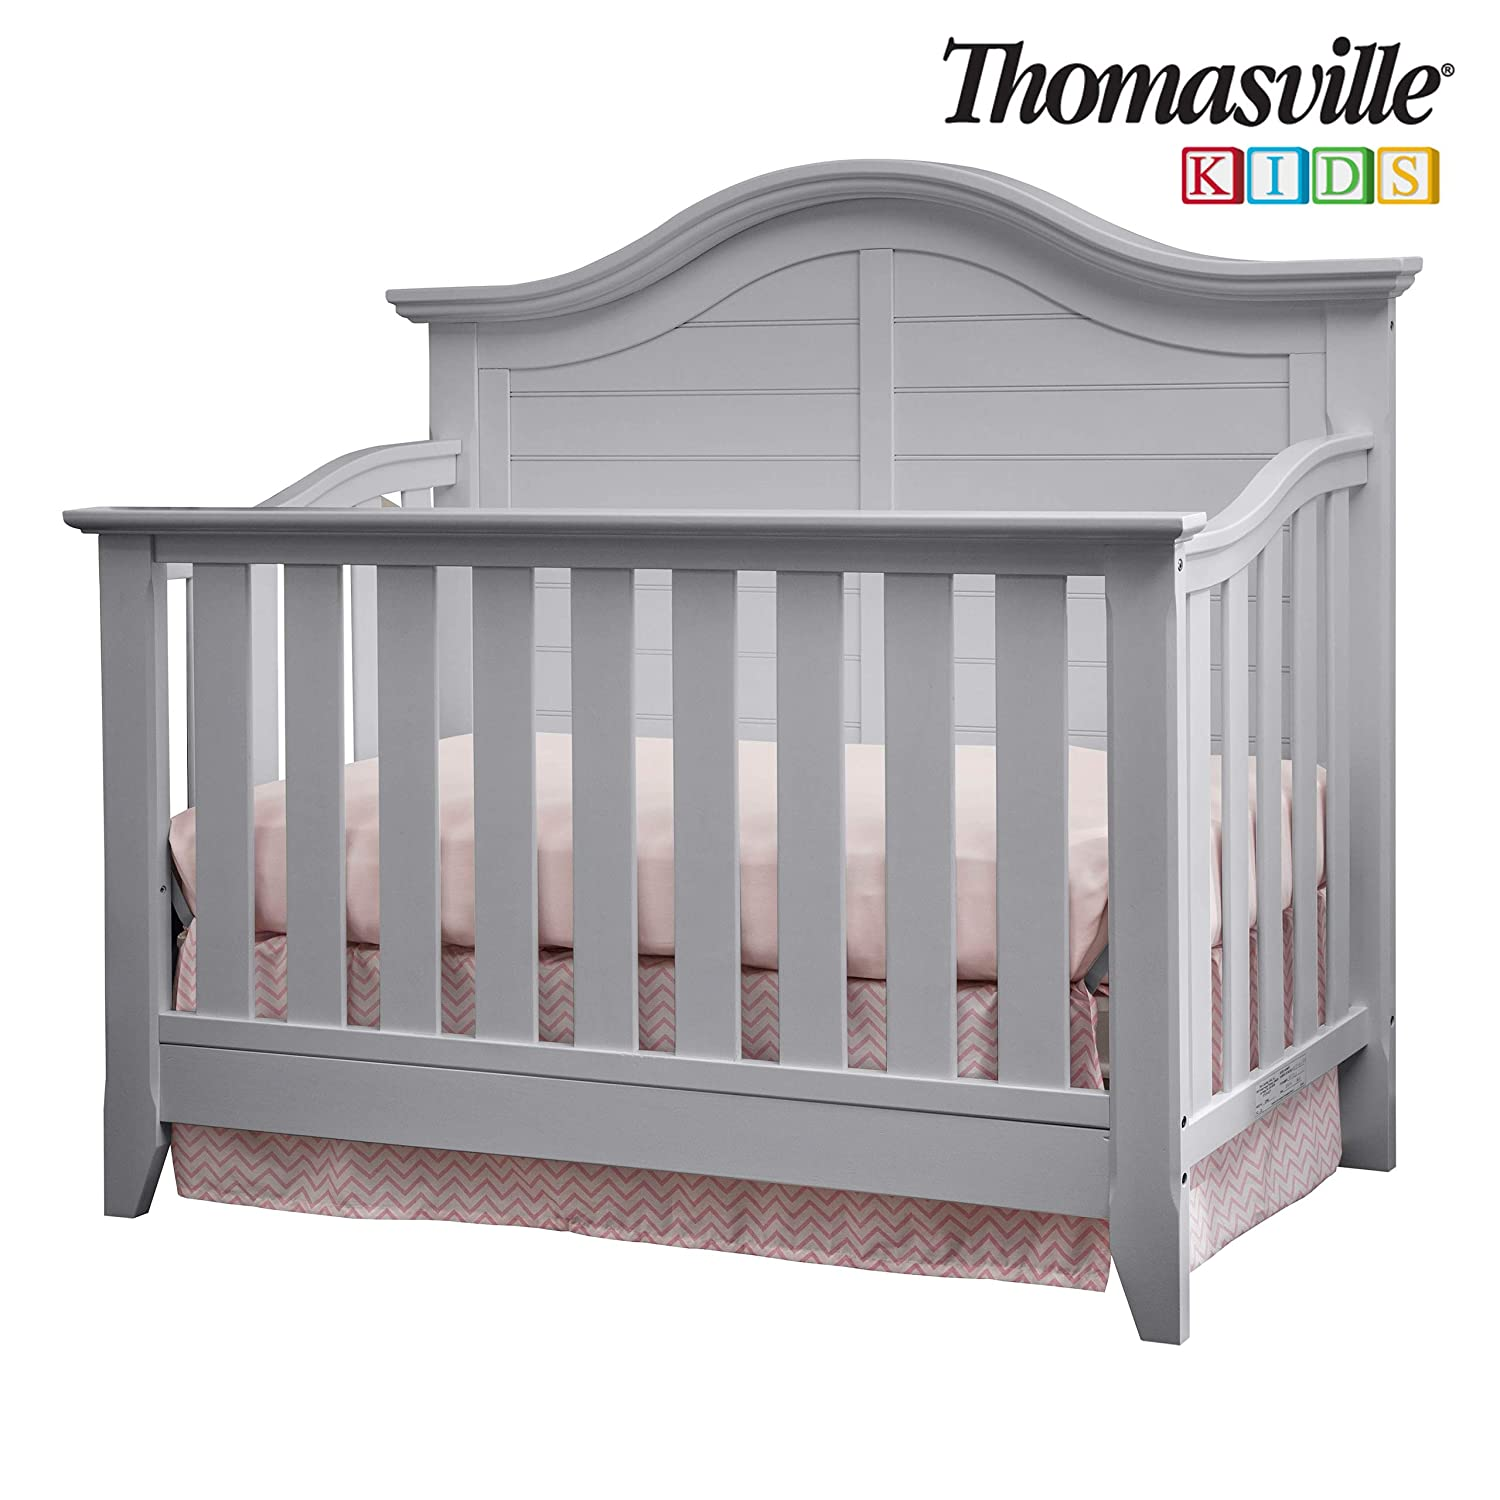 Three Position Adjustable Height Mattress Mattress Not Included Thomasville Kids Southern Dunes Lifestyle 4-in-1 Convertible Crib Espresso Easily Converts to Toddler Bed Day Bed or Full Bed